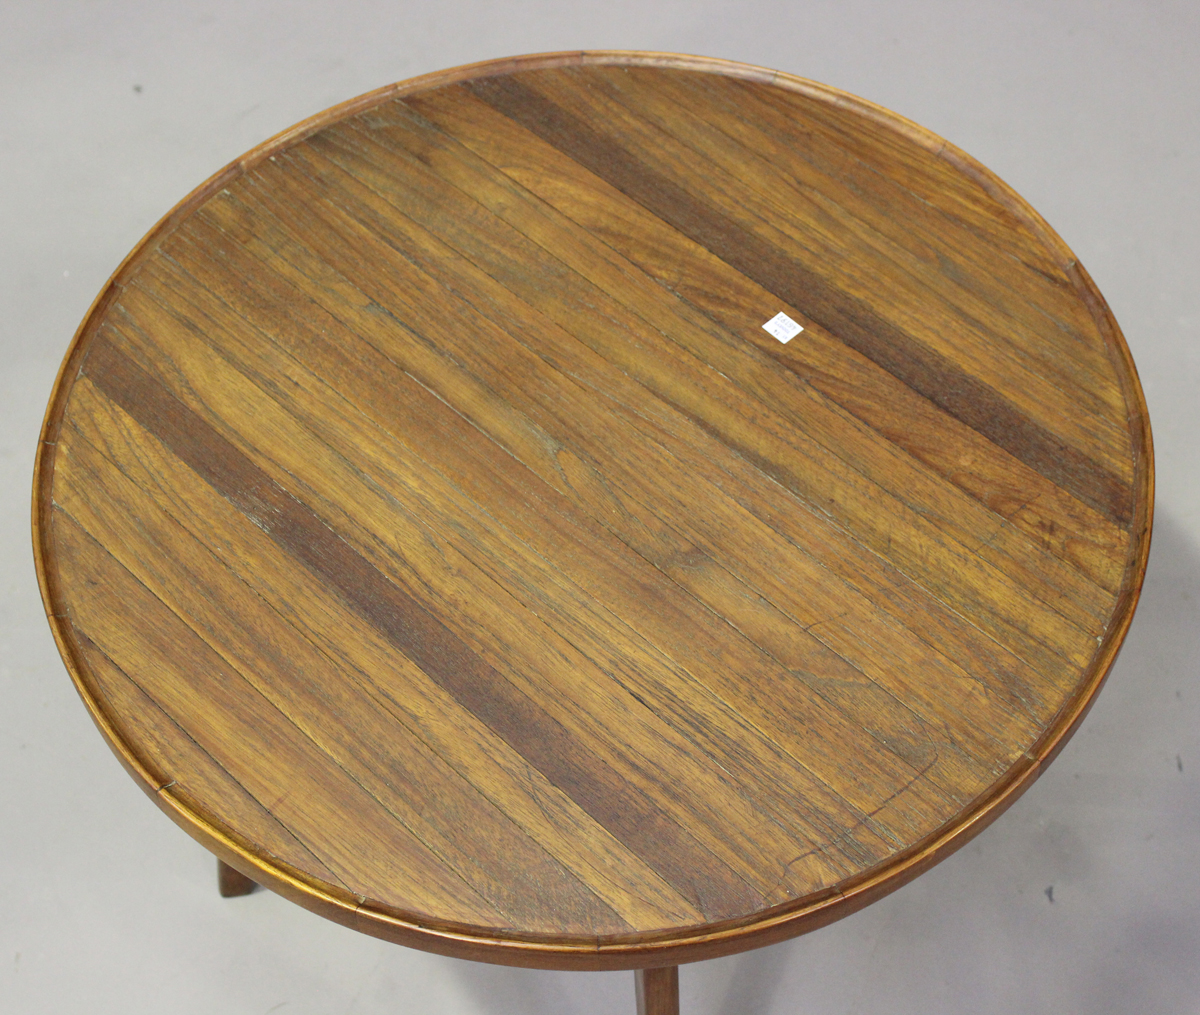 A mid-20th century teak circular occasional table of retro design, the planked top with raised edge, - Image 4 of 4